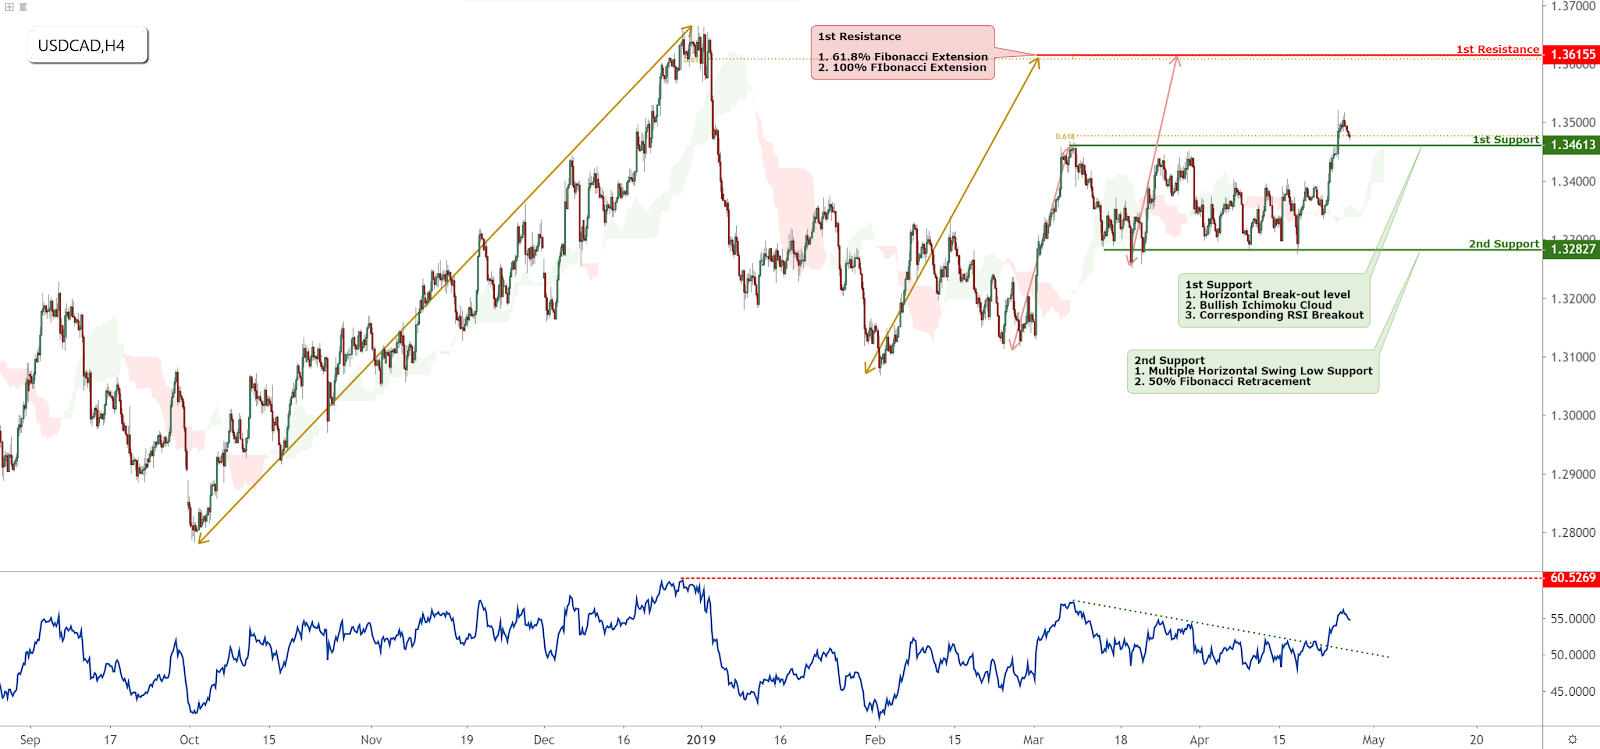 USDCAD Technical Analysis (26-04-2019)